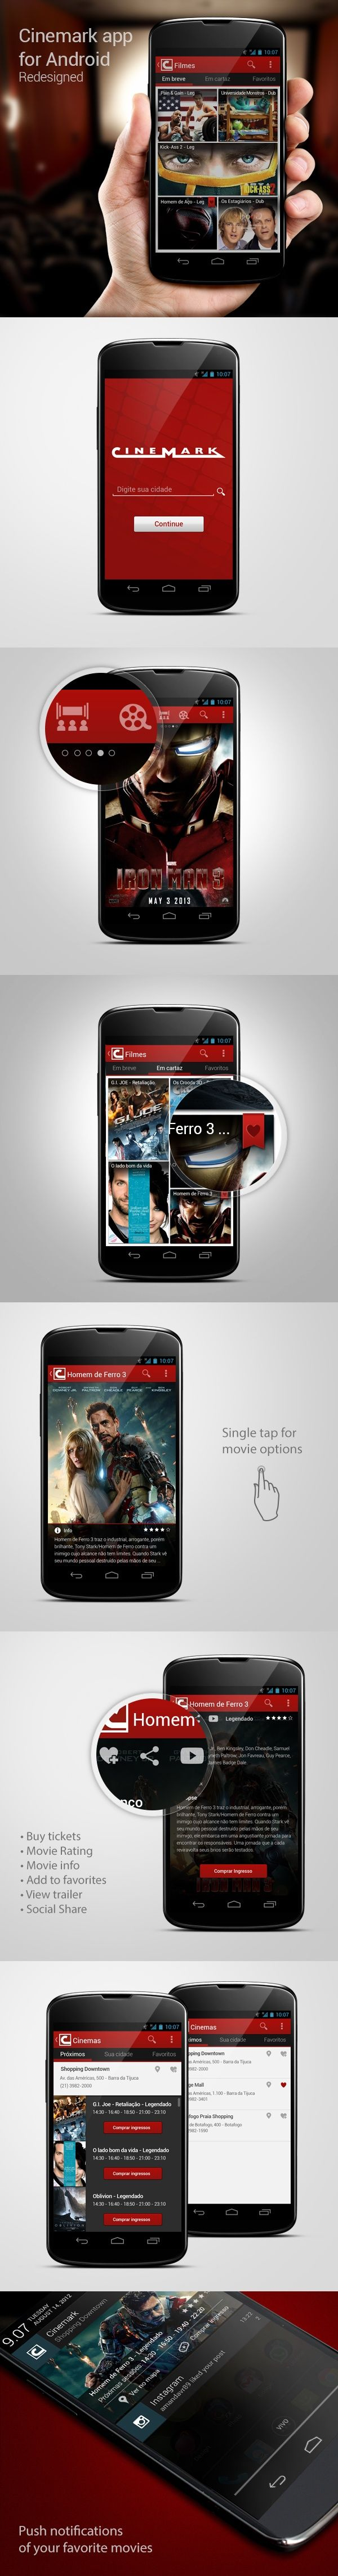 Cinemark app for Android Redesigned by Ricardo Monteiro